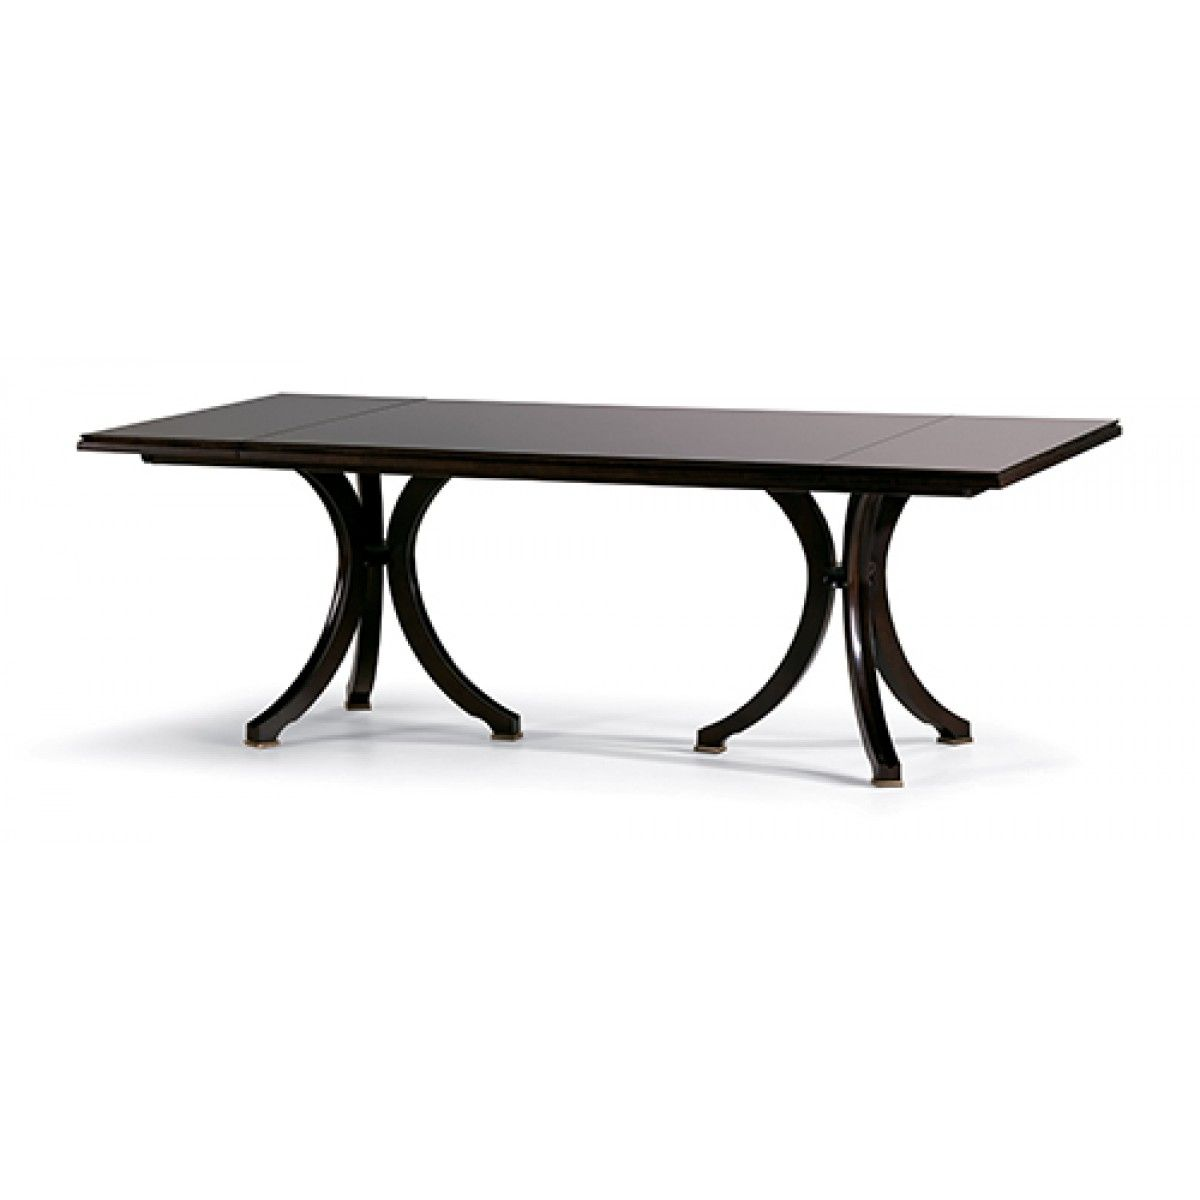 Baker Laura Kirar Vienna Dining Table Furniture Dining Rooms